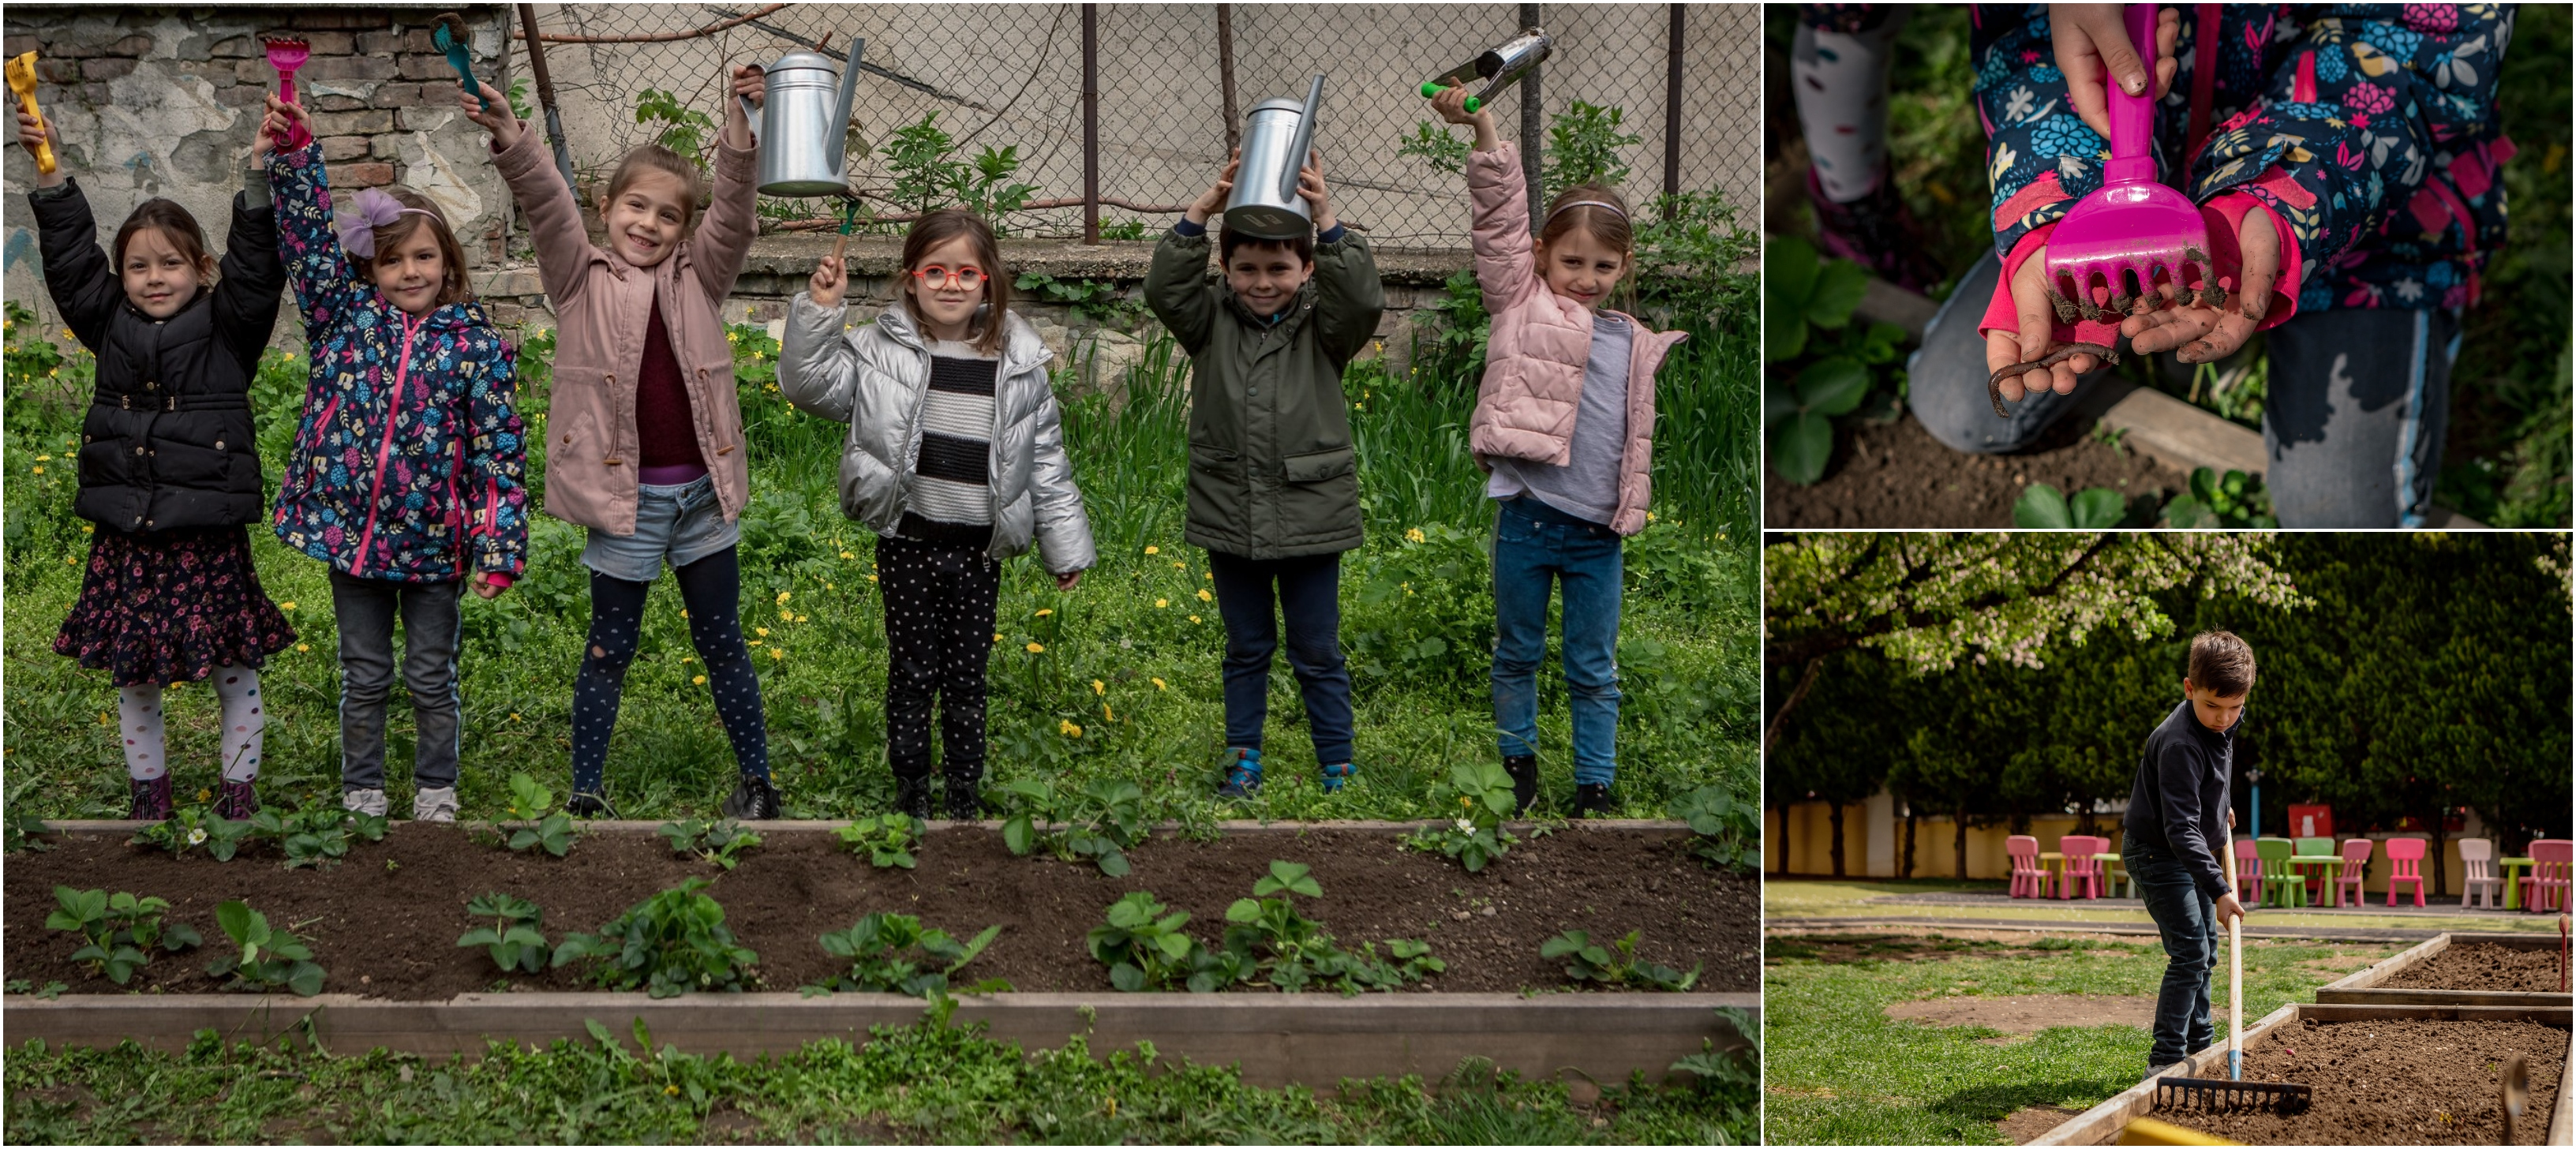 A key part of the program is the establishment and maintenance of gardens in preschools throughout Serbia.